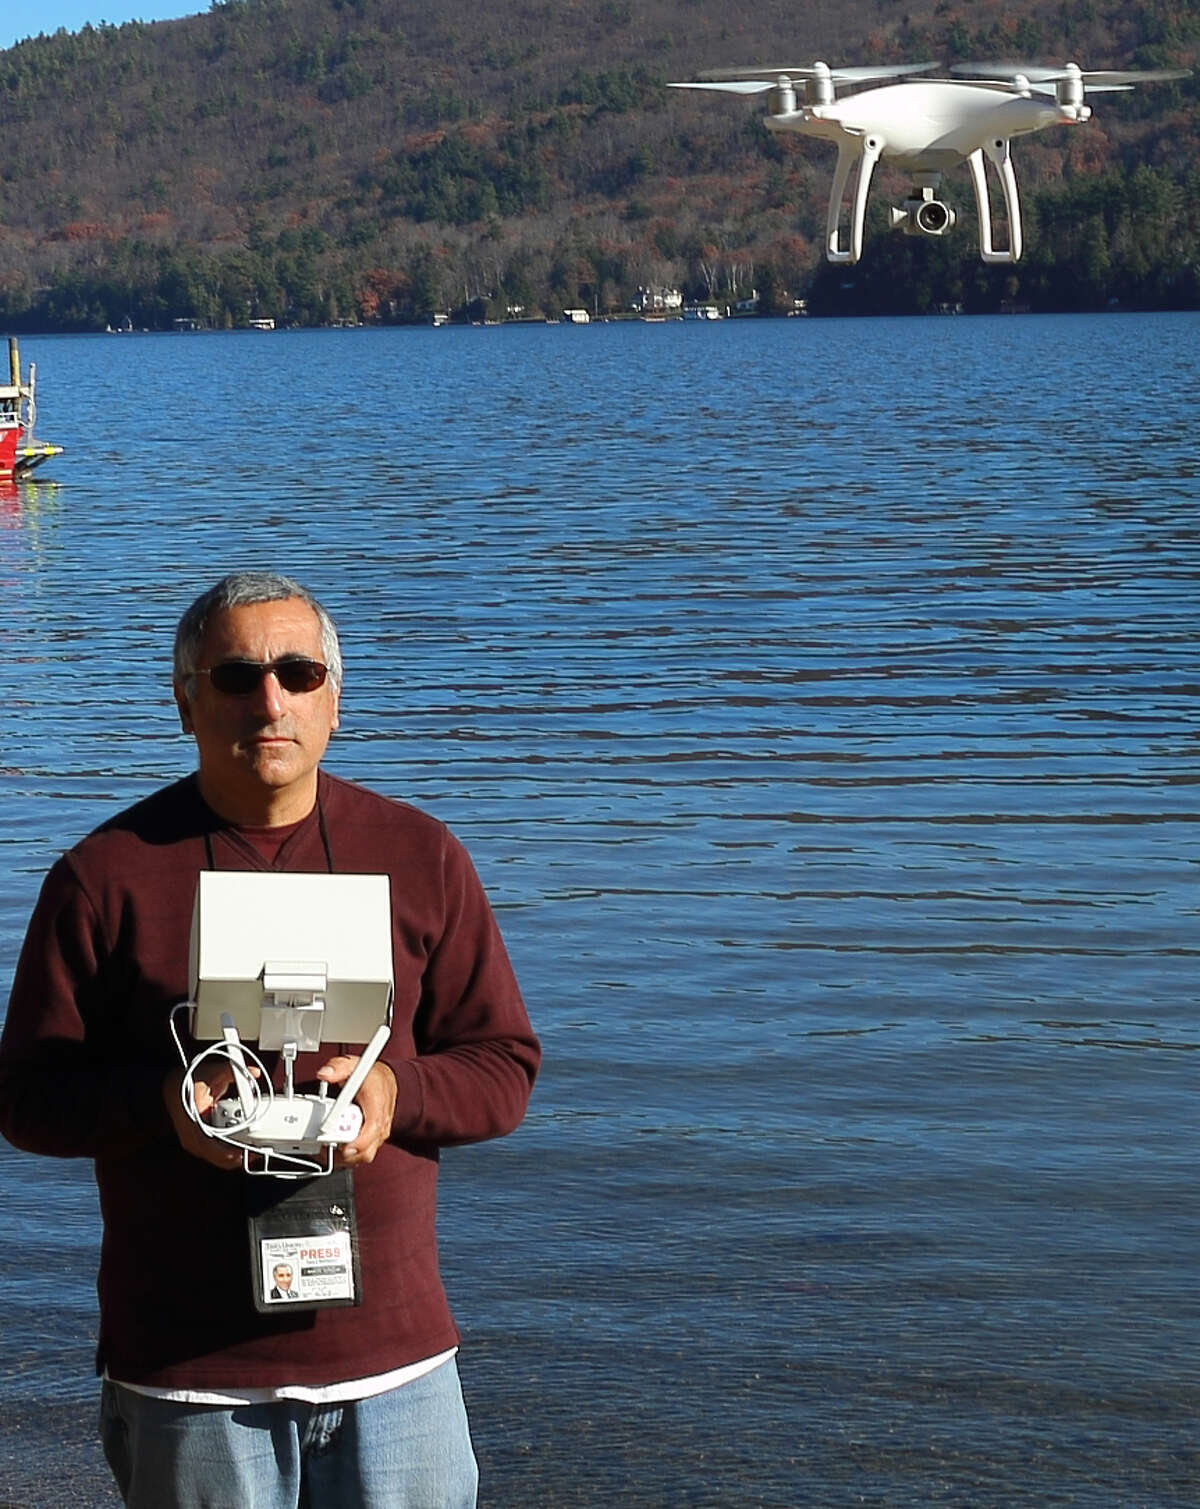 Gary McPherson, the first commercially-licensed aerial drone pilot in the Capitol Region, uses his drone to take pictures of the polar plunge event at Lake George last month.